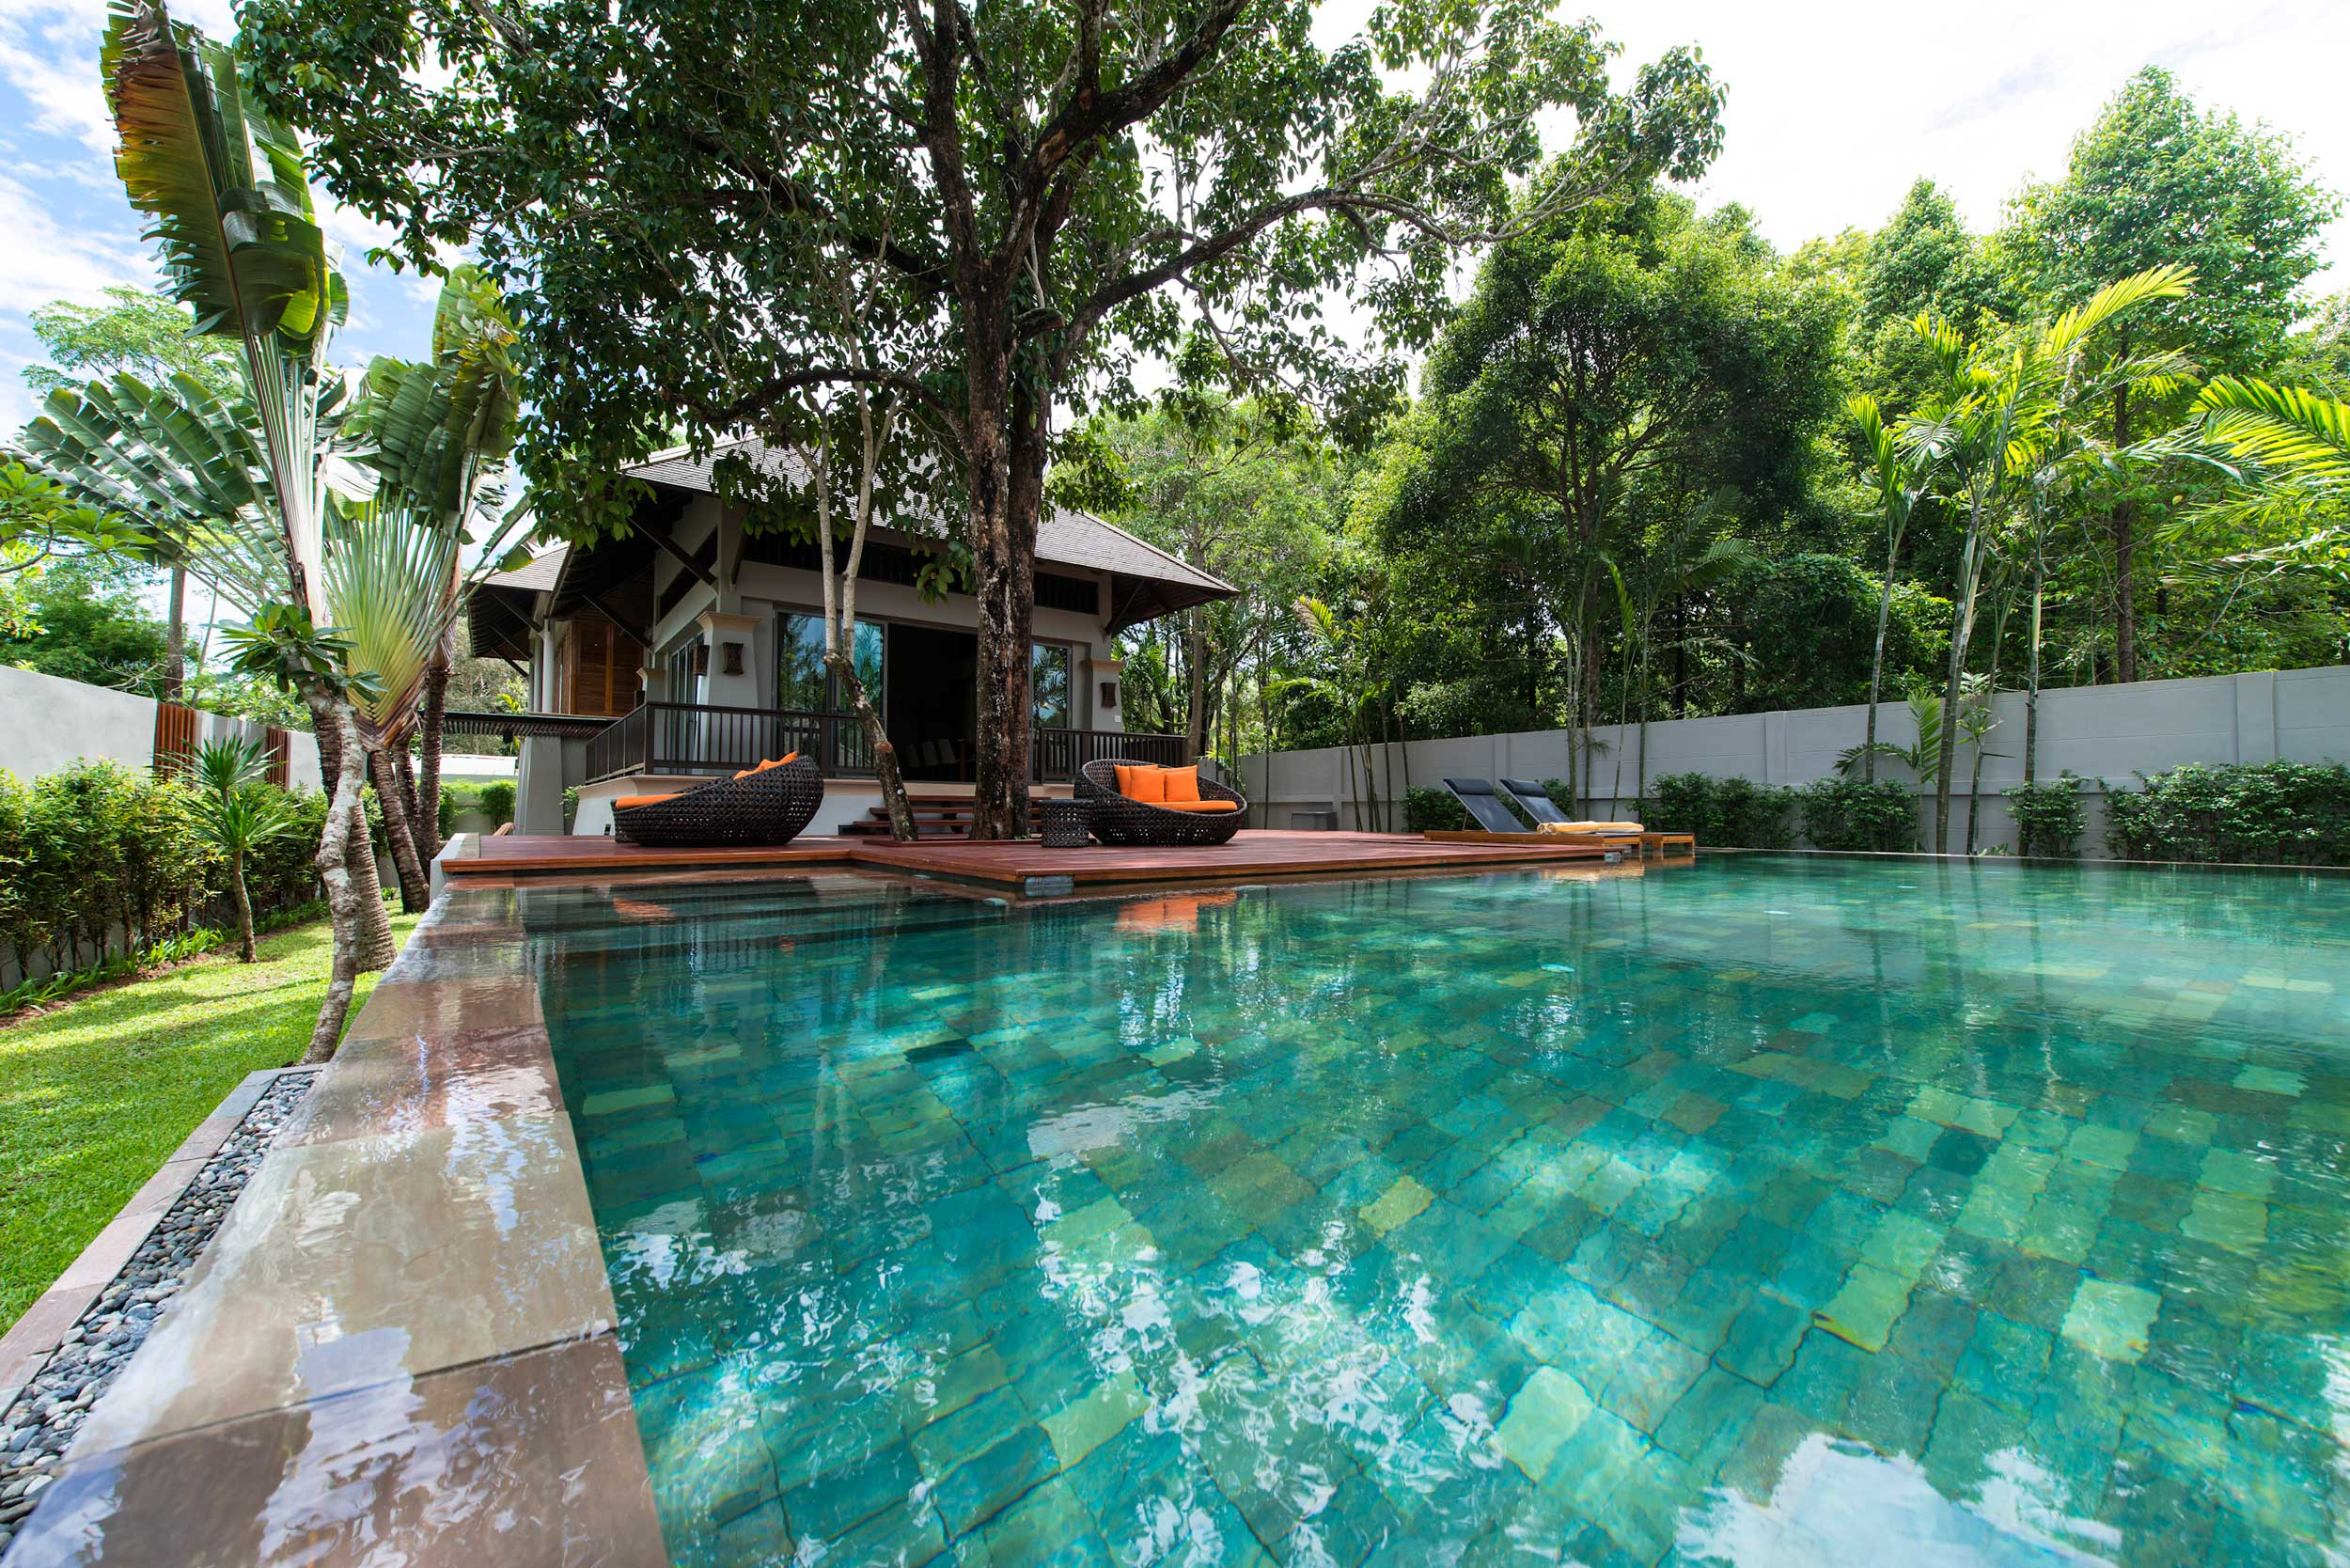 A villa with couch loungers and aaquamarine pool in front of it at Layana Hotel, Thailand